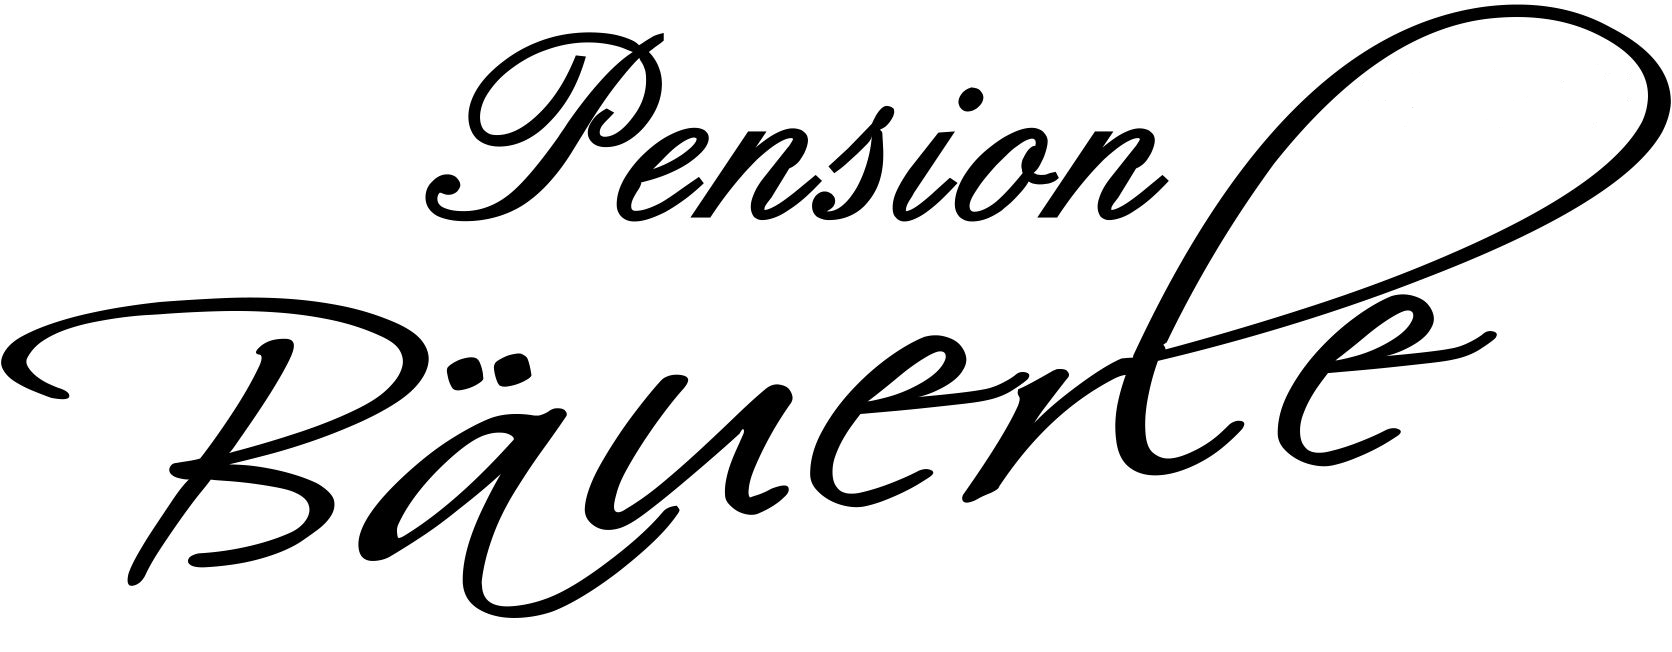 Pension Bäuerle